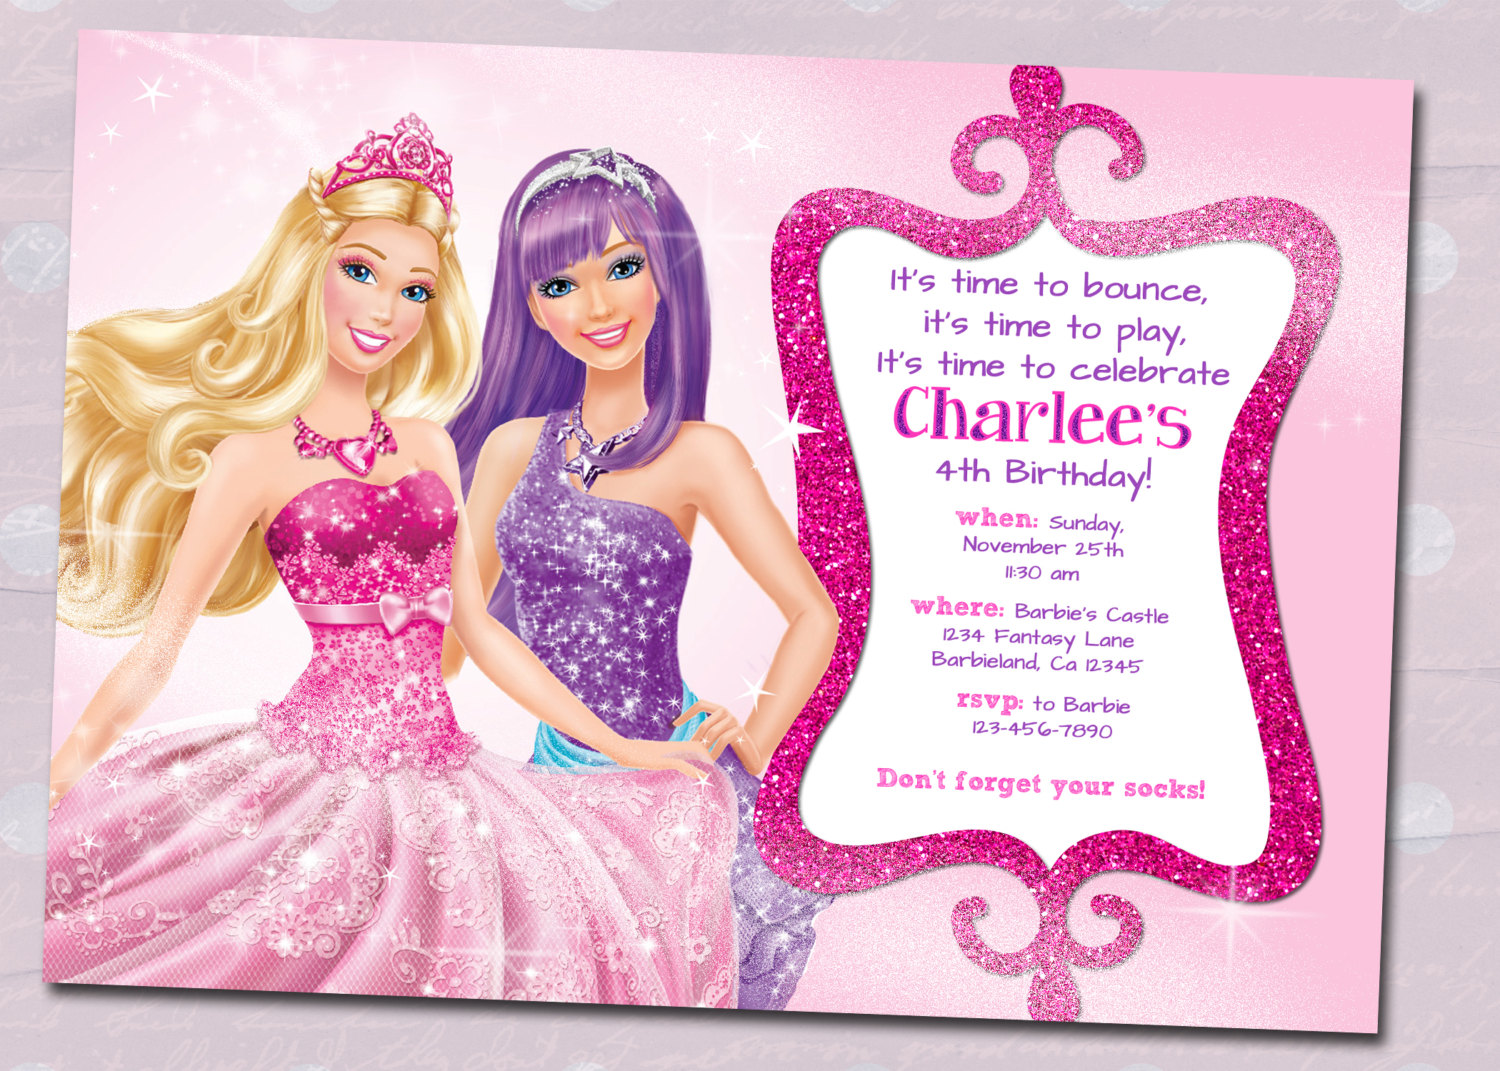 barbie theme birthday invitation card ; Barbie-Birthday-Invitations-to-inspire-you-on-how-to-create-your-own-Birthday-invitation-1